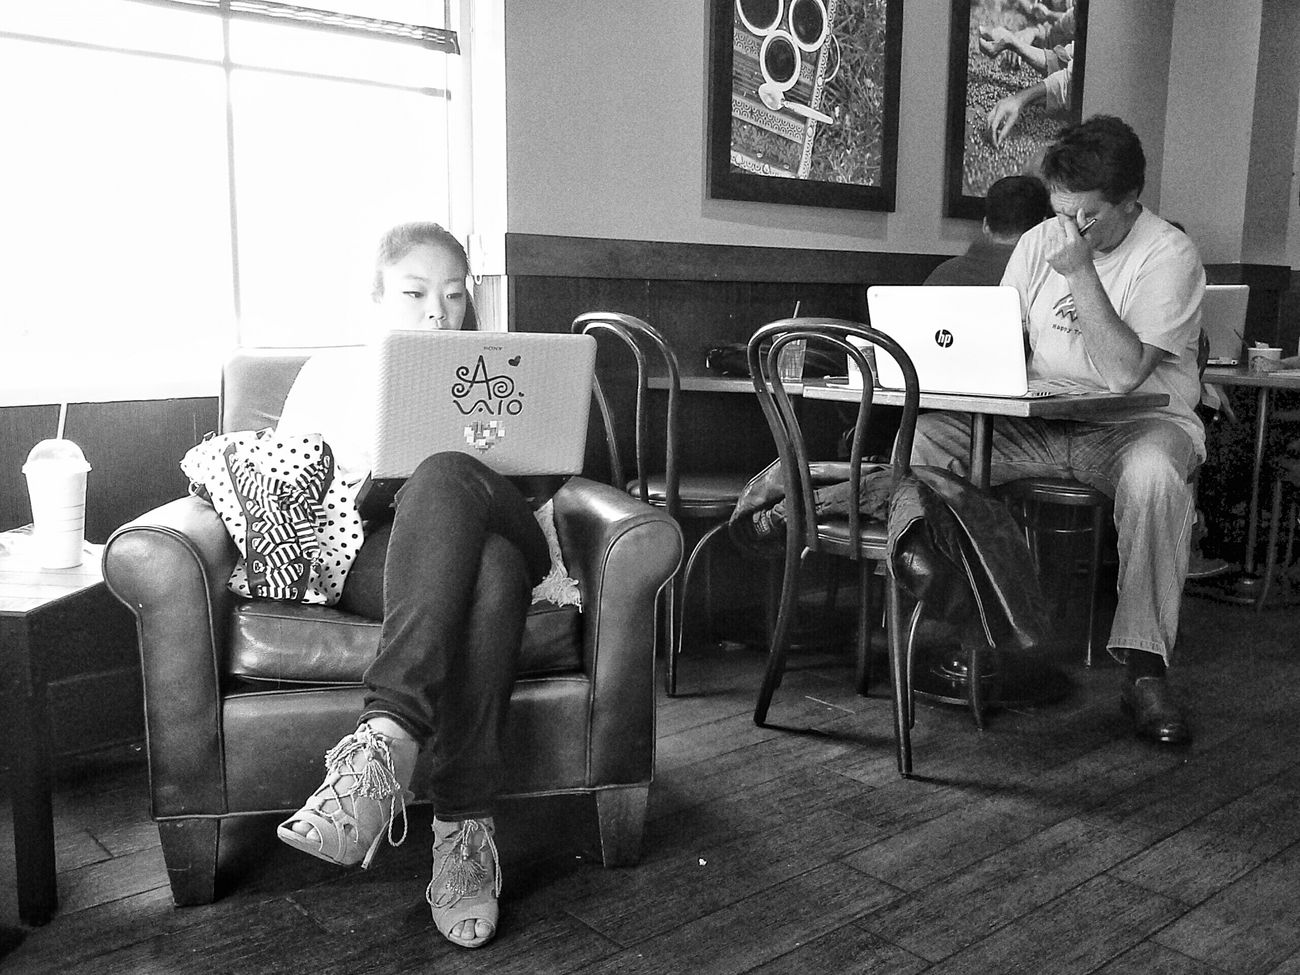 Starbucks Experience Samsung Galaxy Note 8 Blackandwhite Street Streetphotography Streetphoto_bw Snapseed 2 very different Starbucks experiences